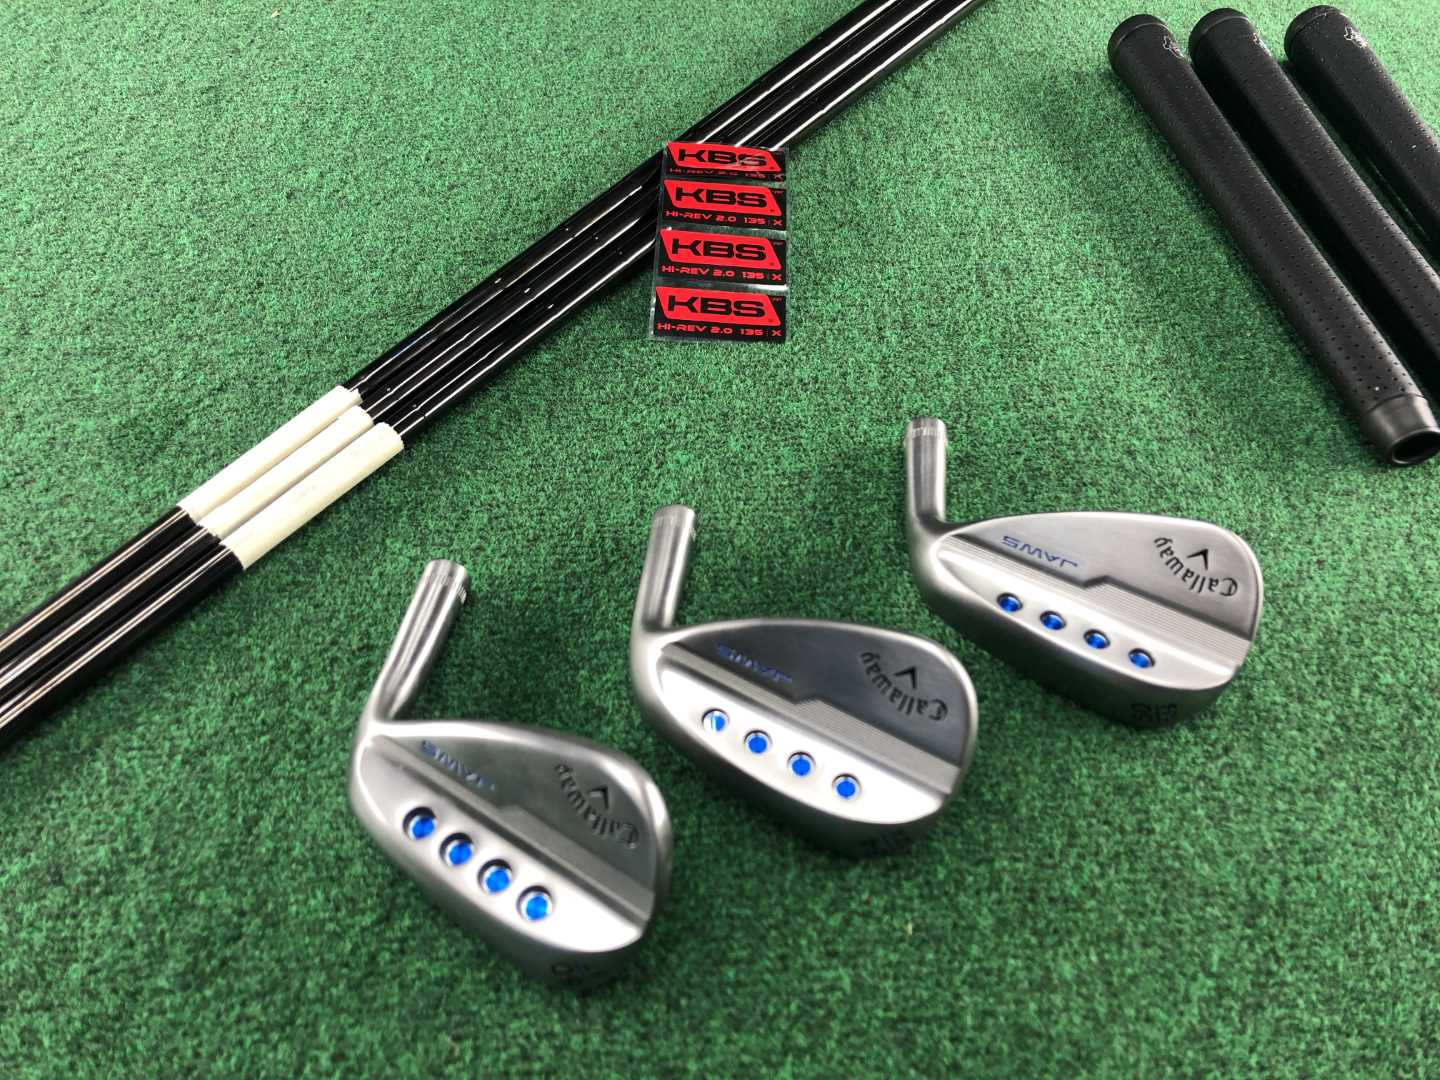 Callaway MD5 Raw wedges including the new T grind